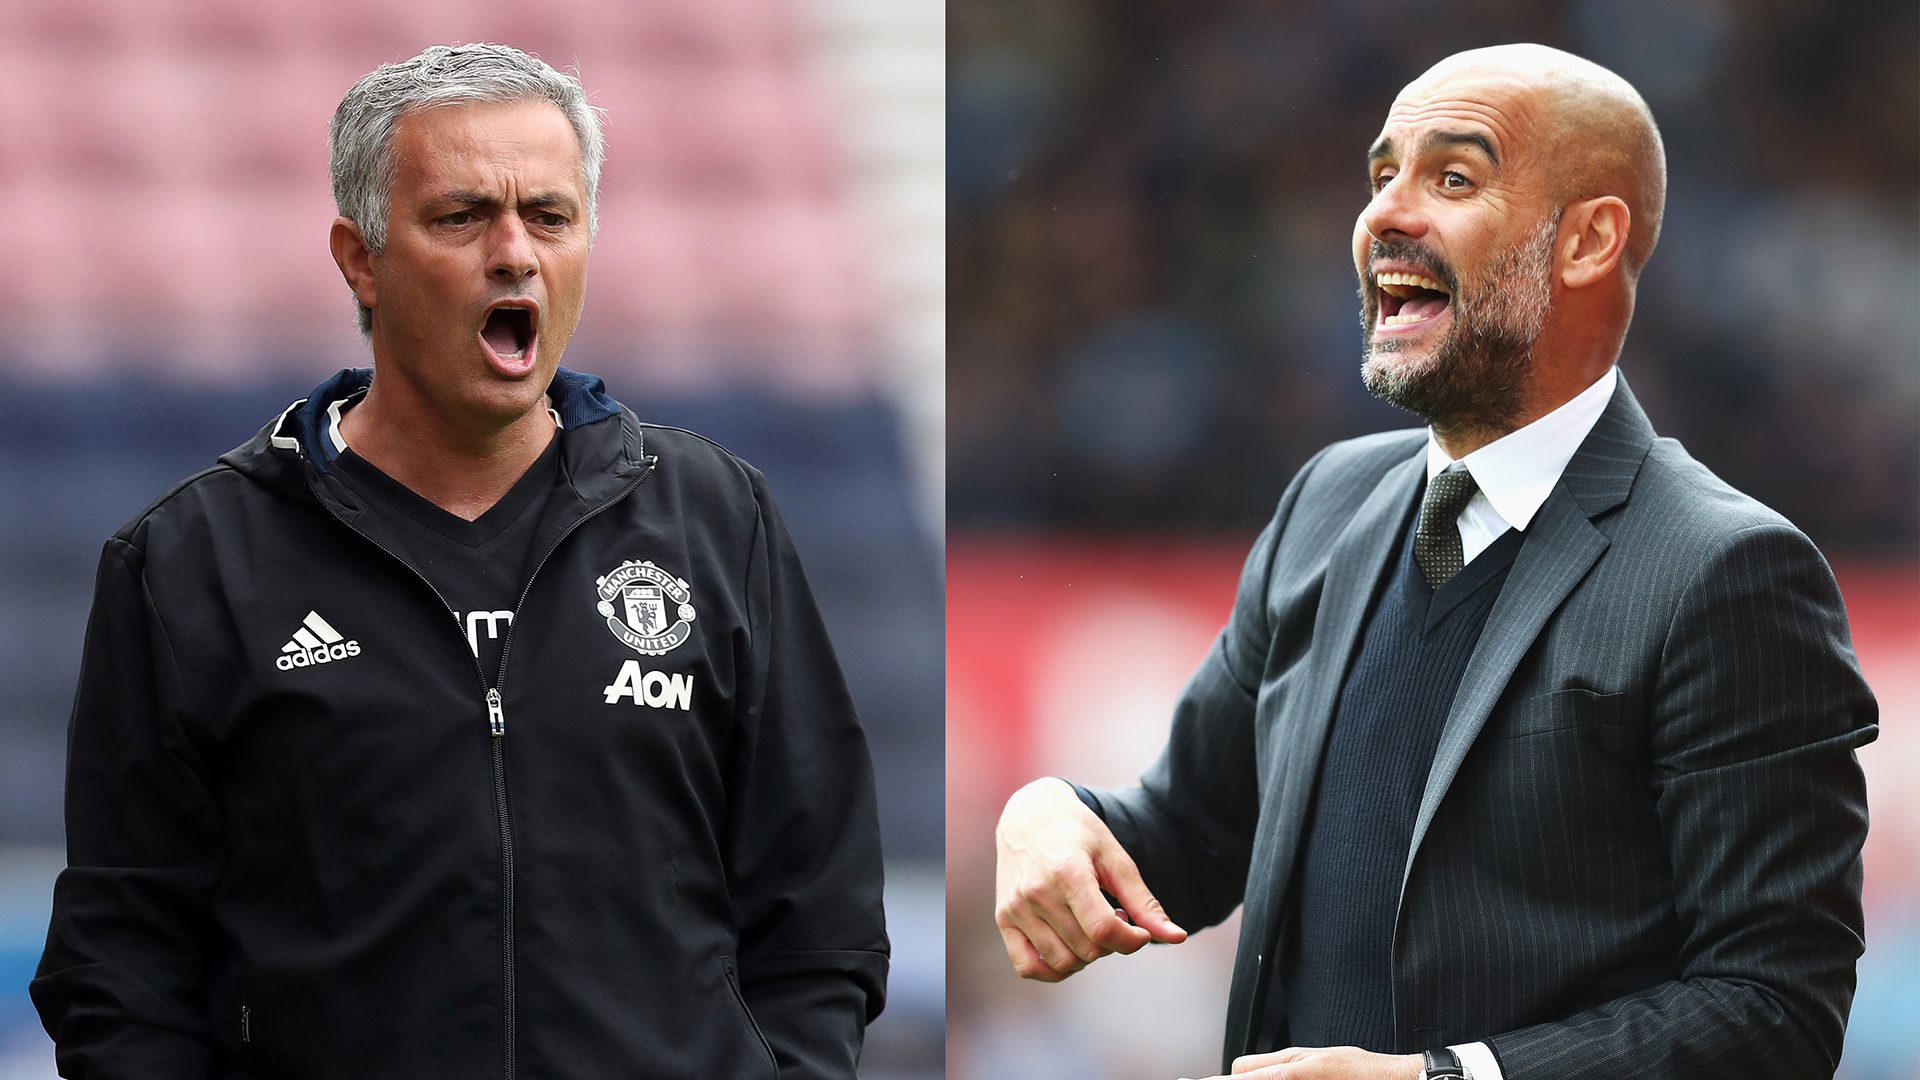 Plenty of food for thought as busy Premier League schedule continues